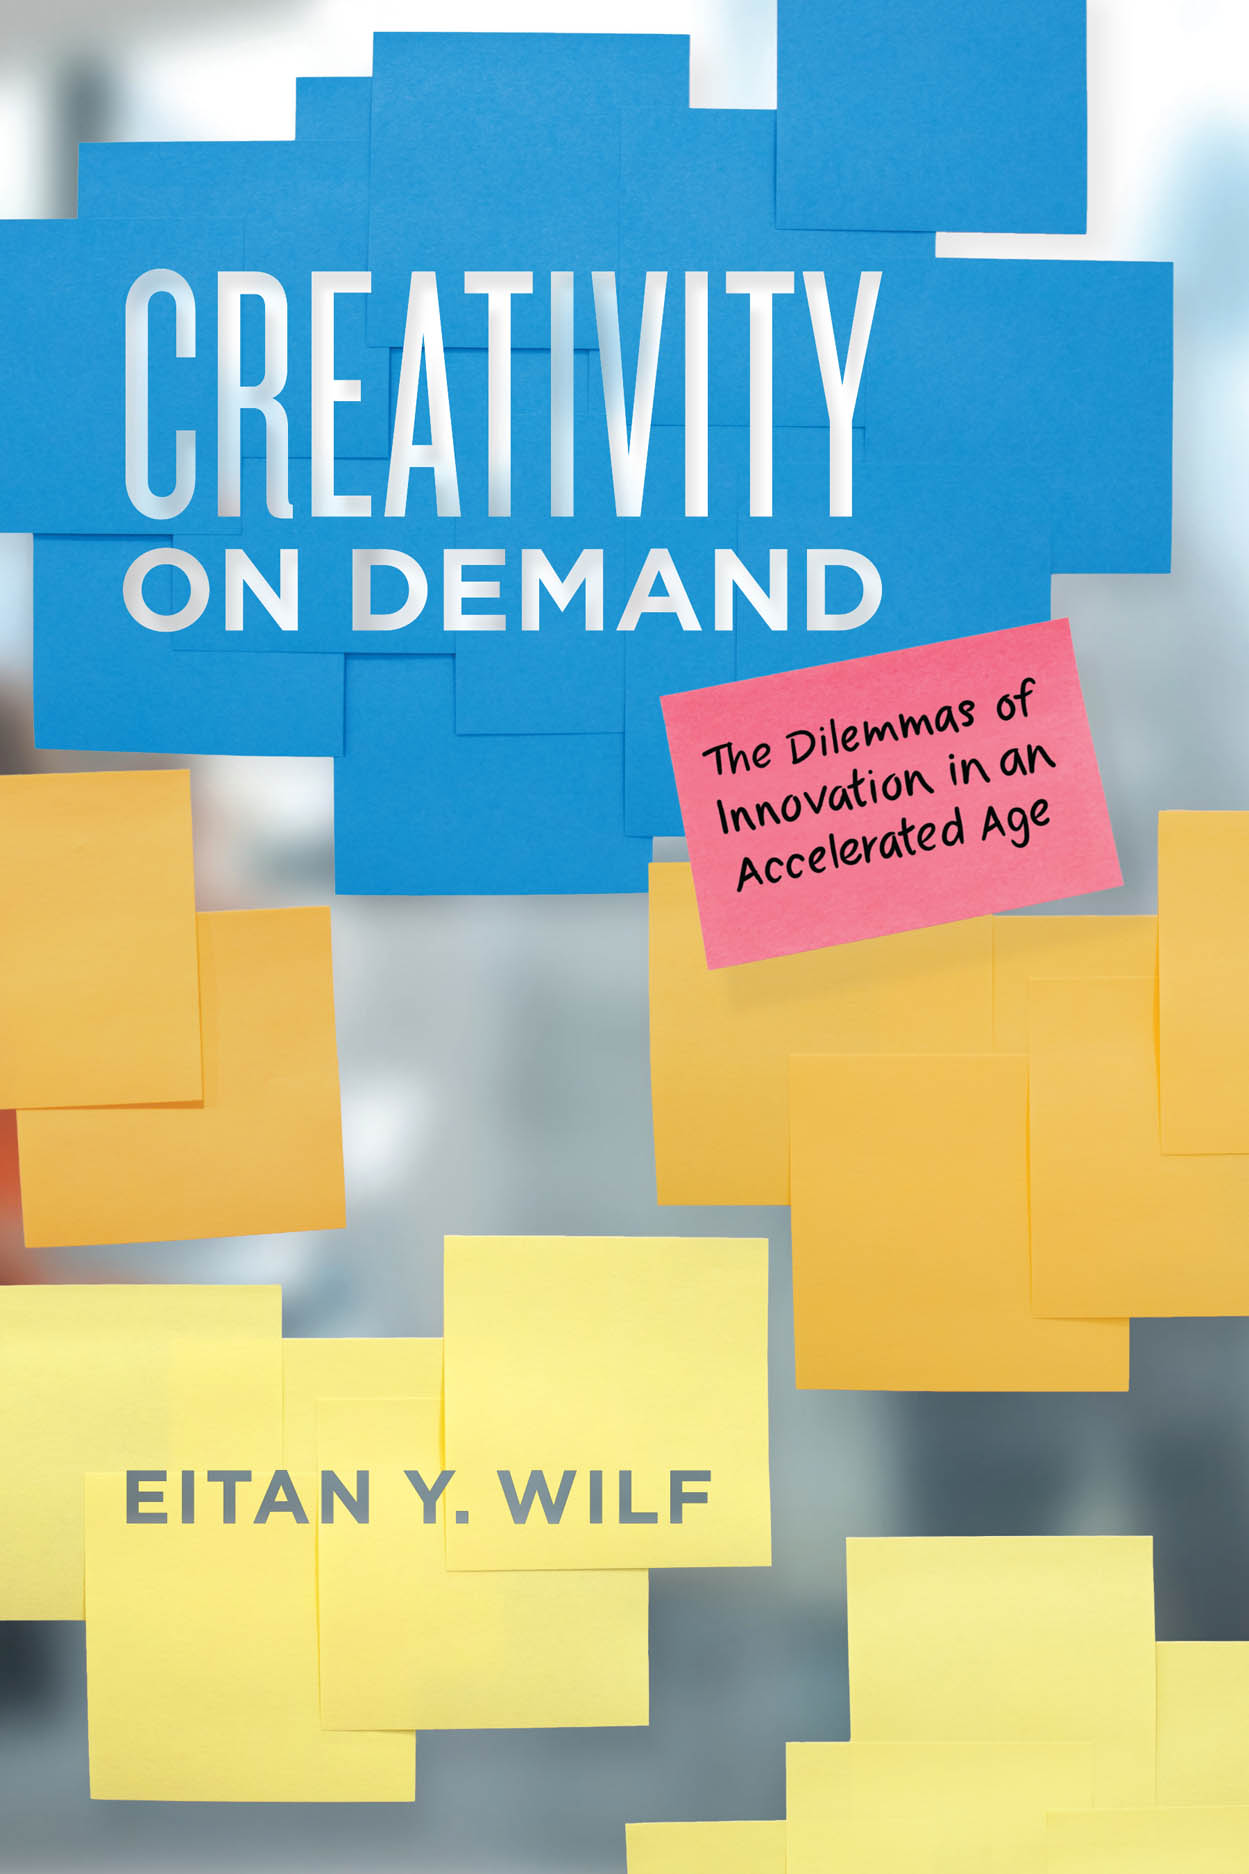 Creativity on Demand: The Dilemmas of Innovation in an Accelerated Age